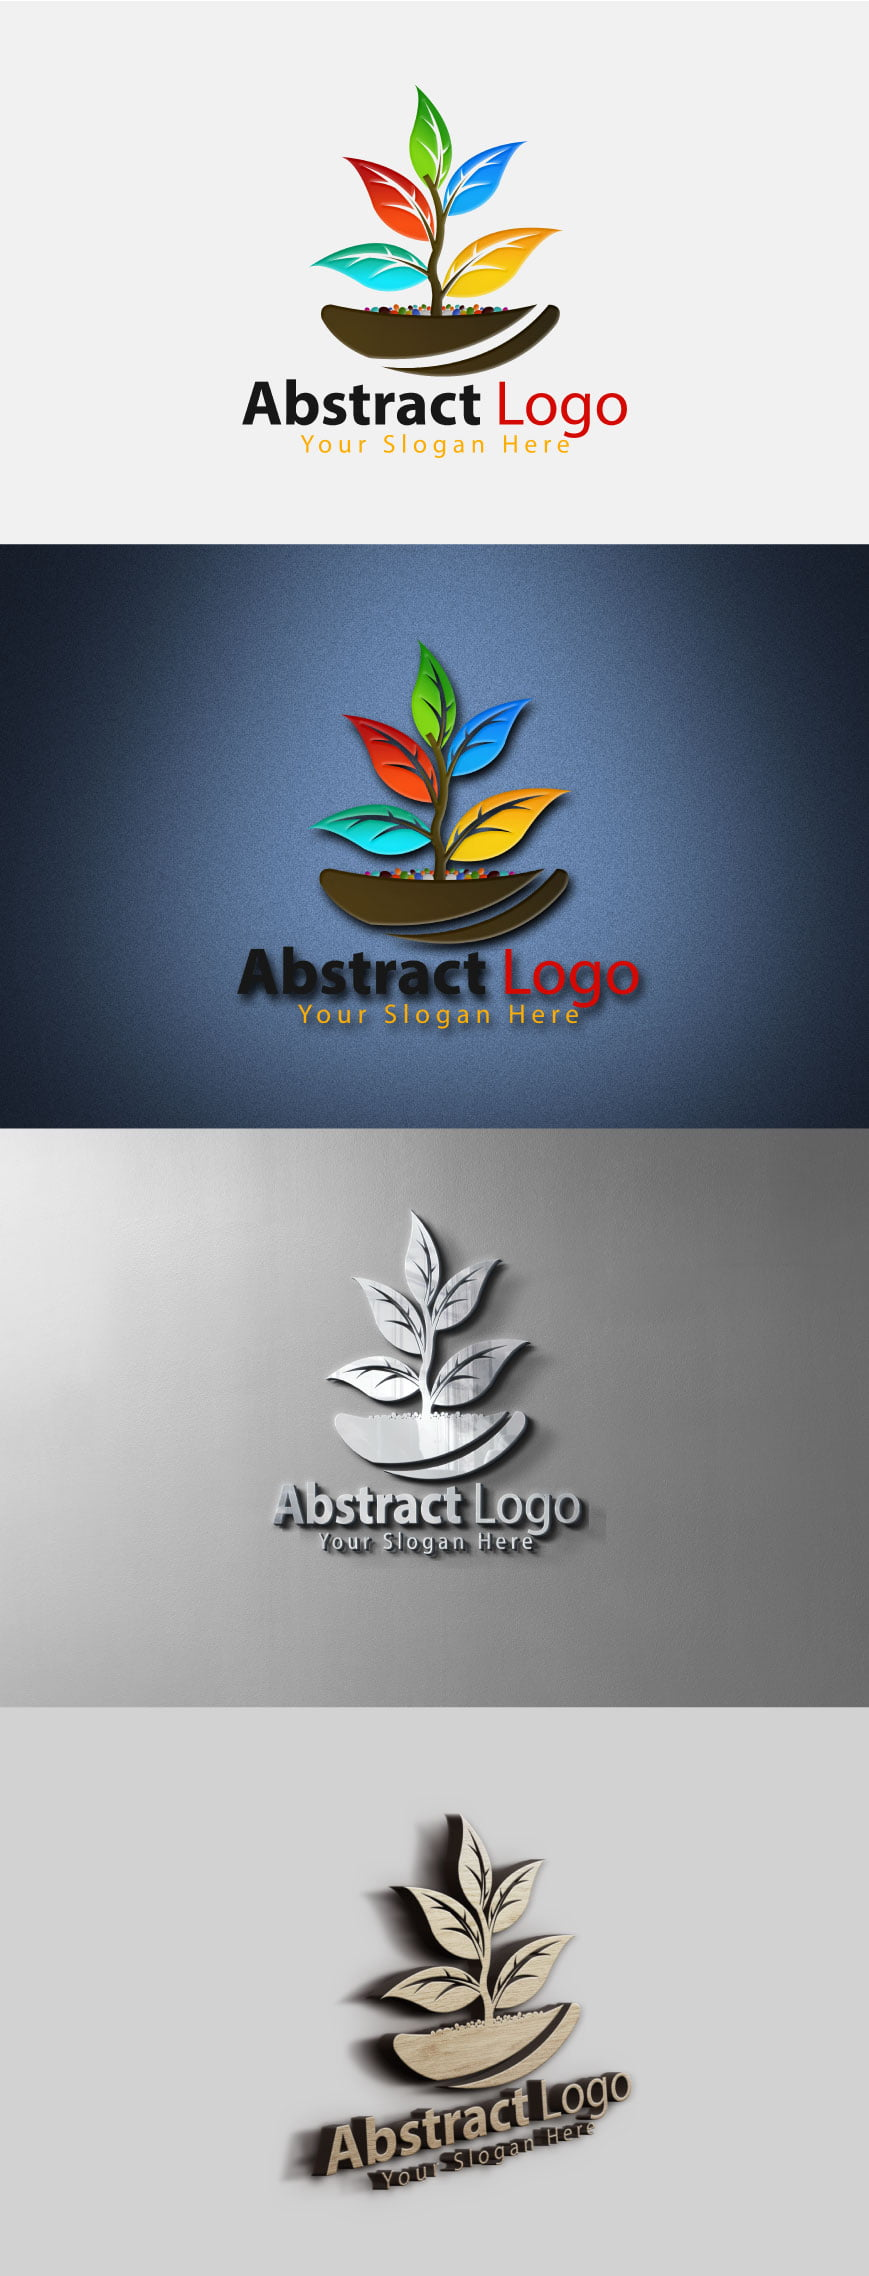 Free Abstract Logo Template